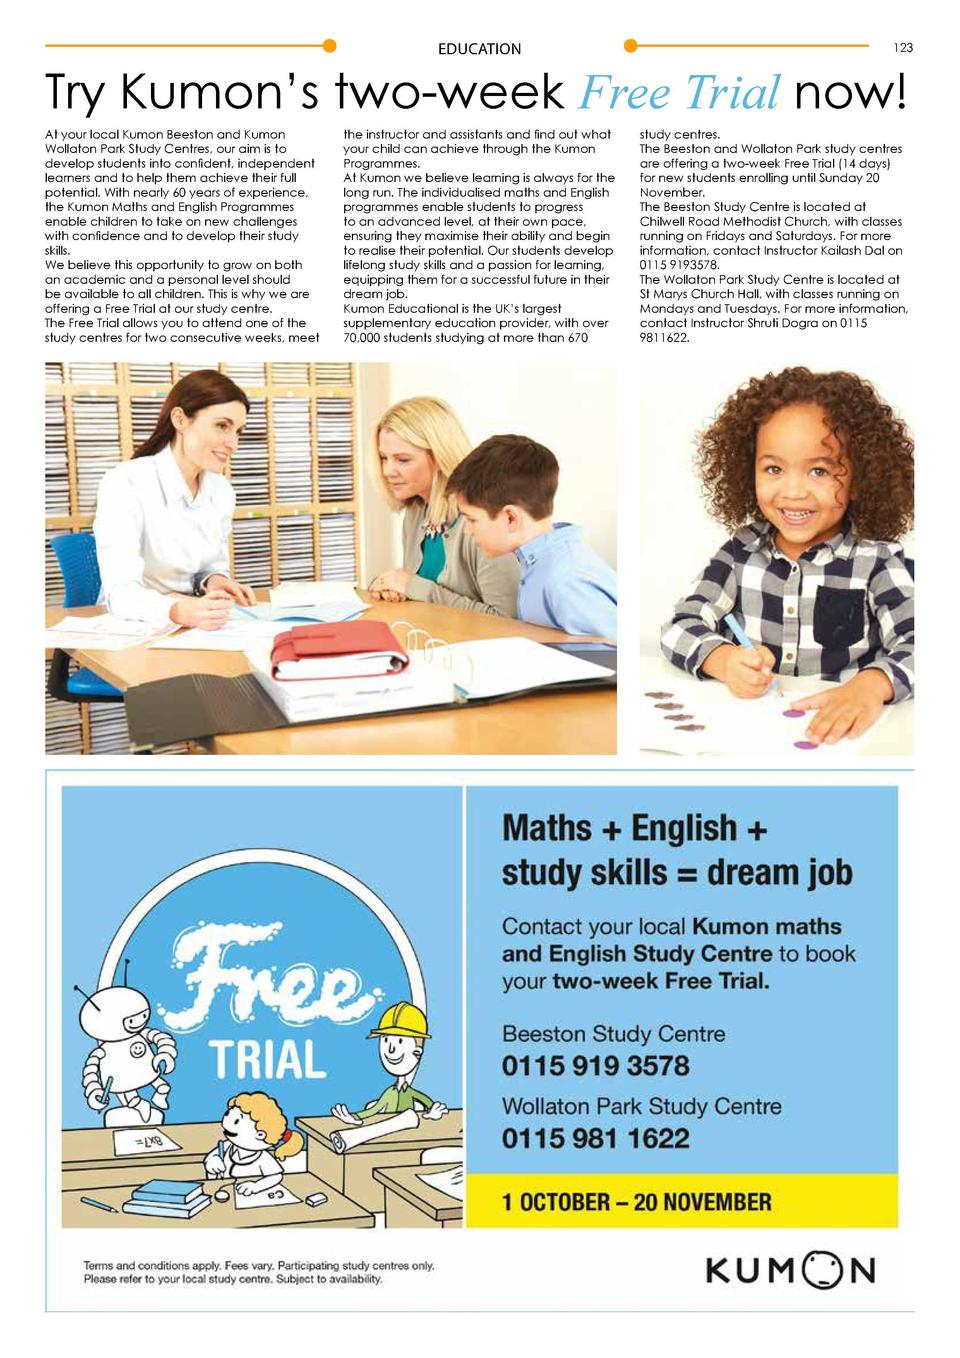 122  EDUCATION  EDUCATION  Try Kumon   s two-week Free Trial now  At your local Kumon Beeston and Kumon Wollaton Park Stud...